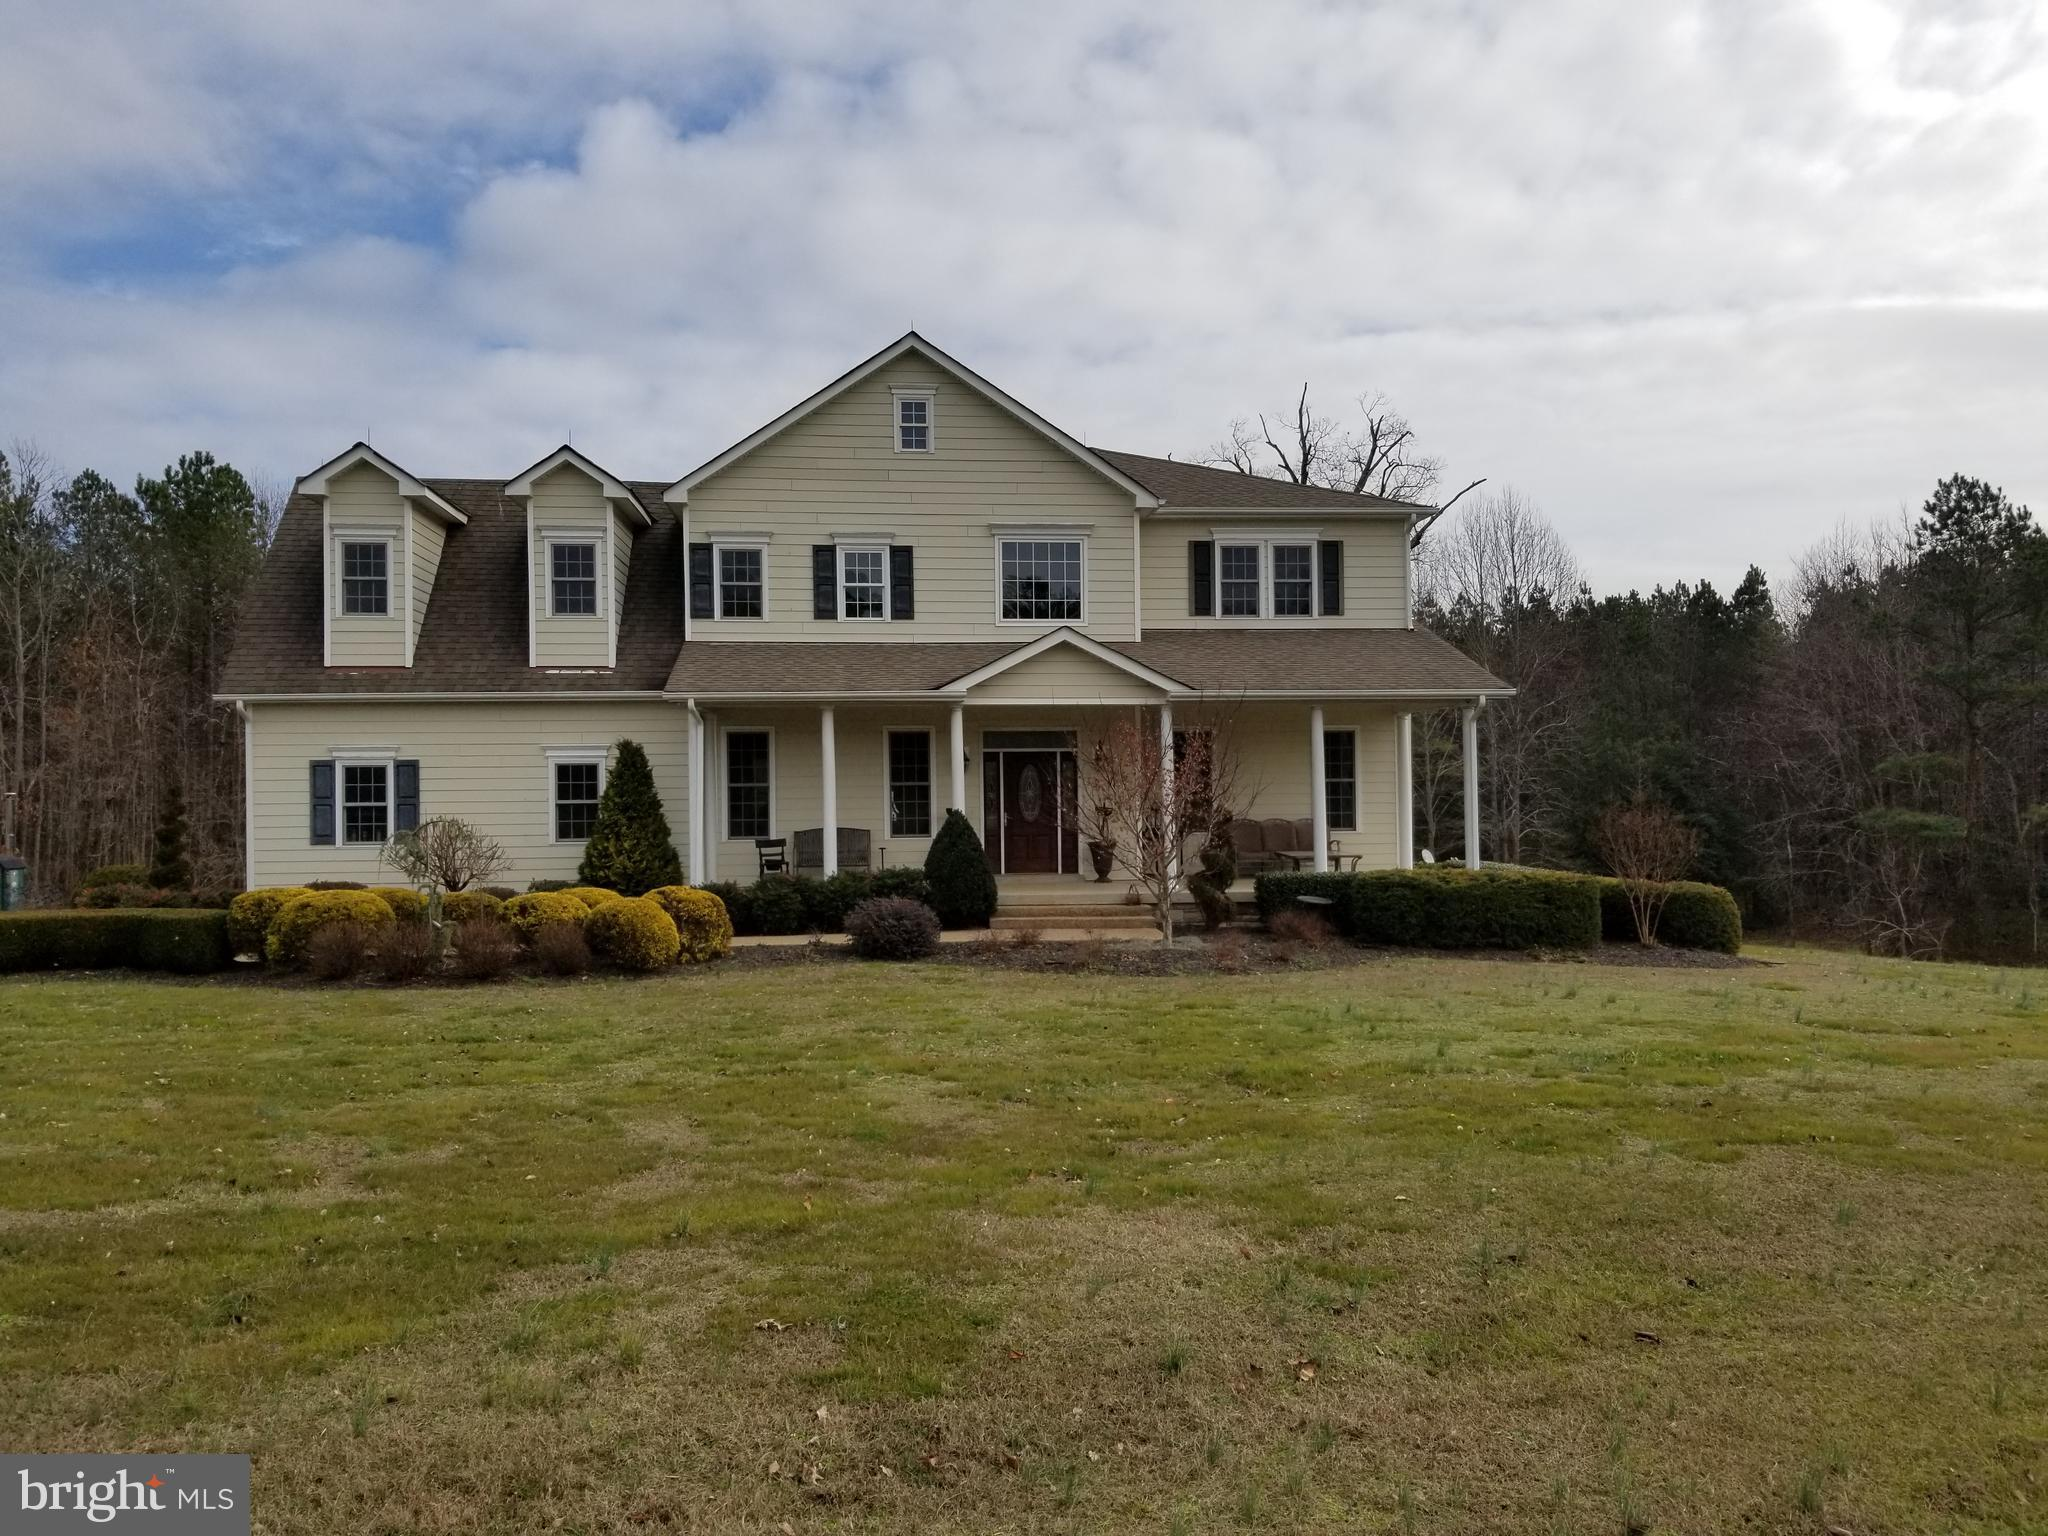 2066 BYRDS MILL ROAD, NEWTOWN, VA 23126